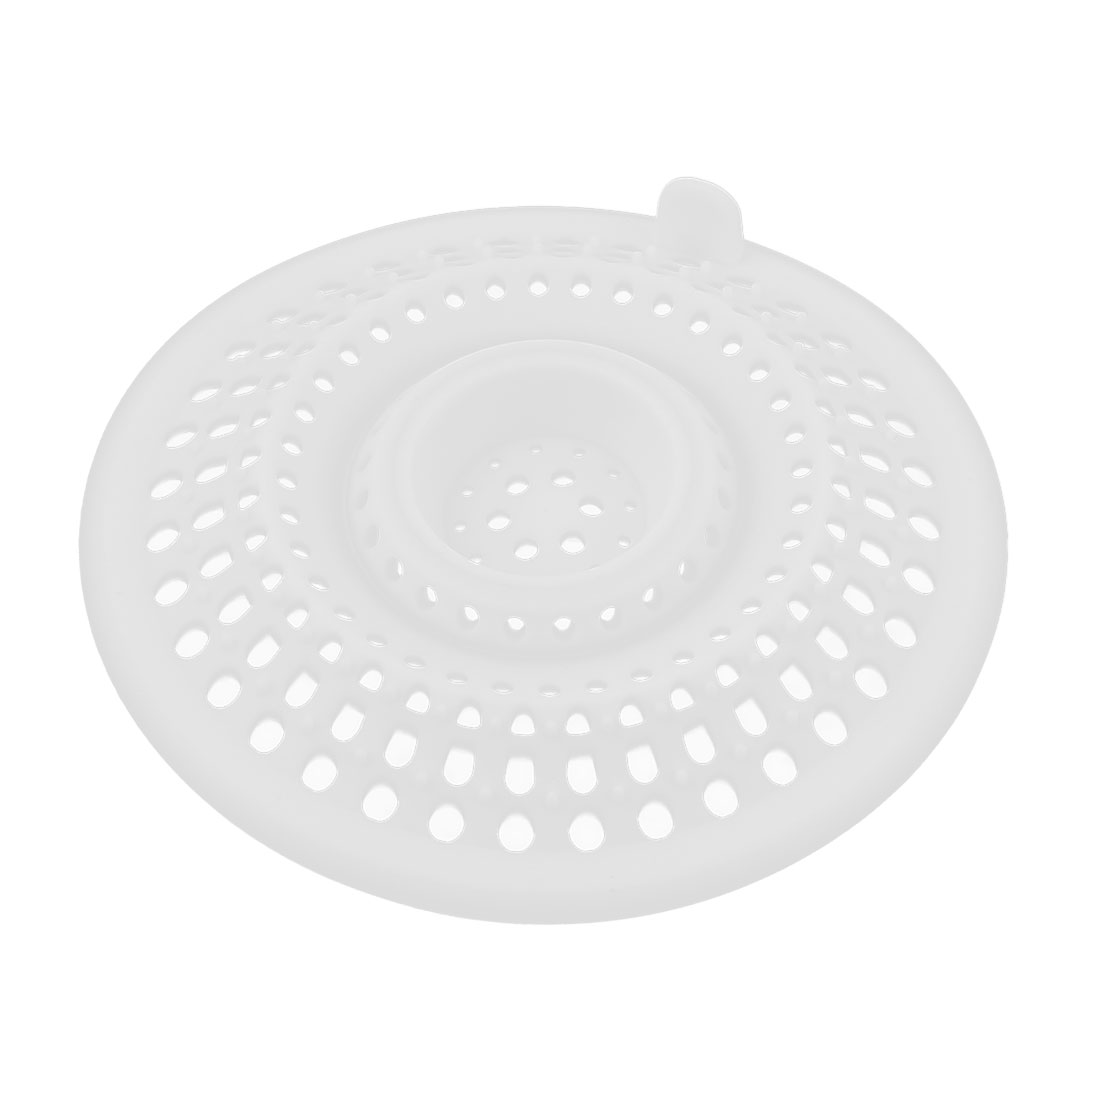 Bathroom White Silicone Mesh Hole Design Sink Strainer Basket Bath Basin Shower Disposal Drain Bathtub Net